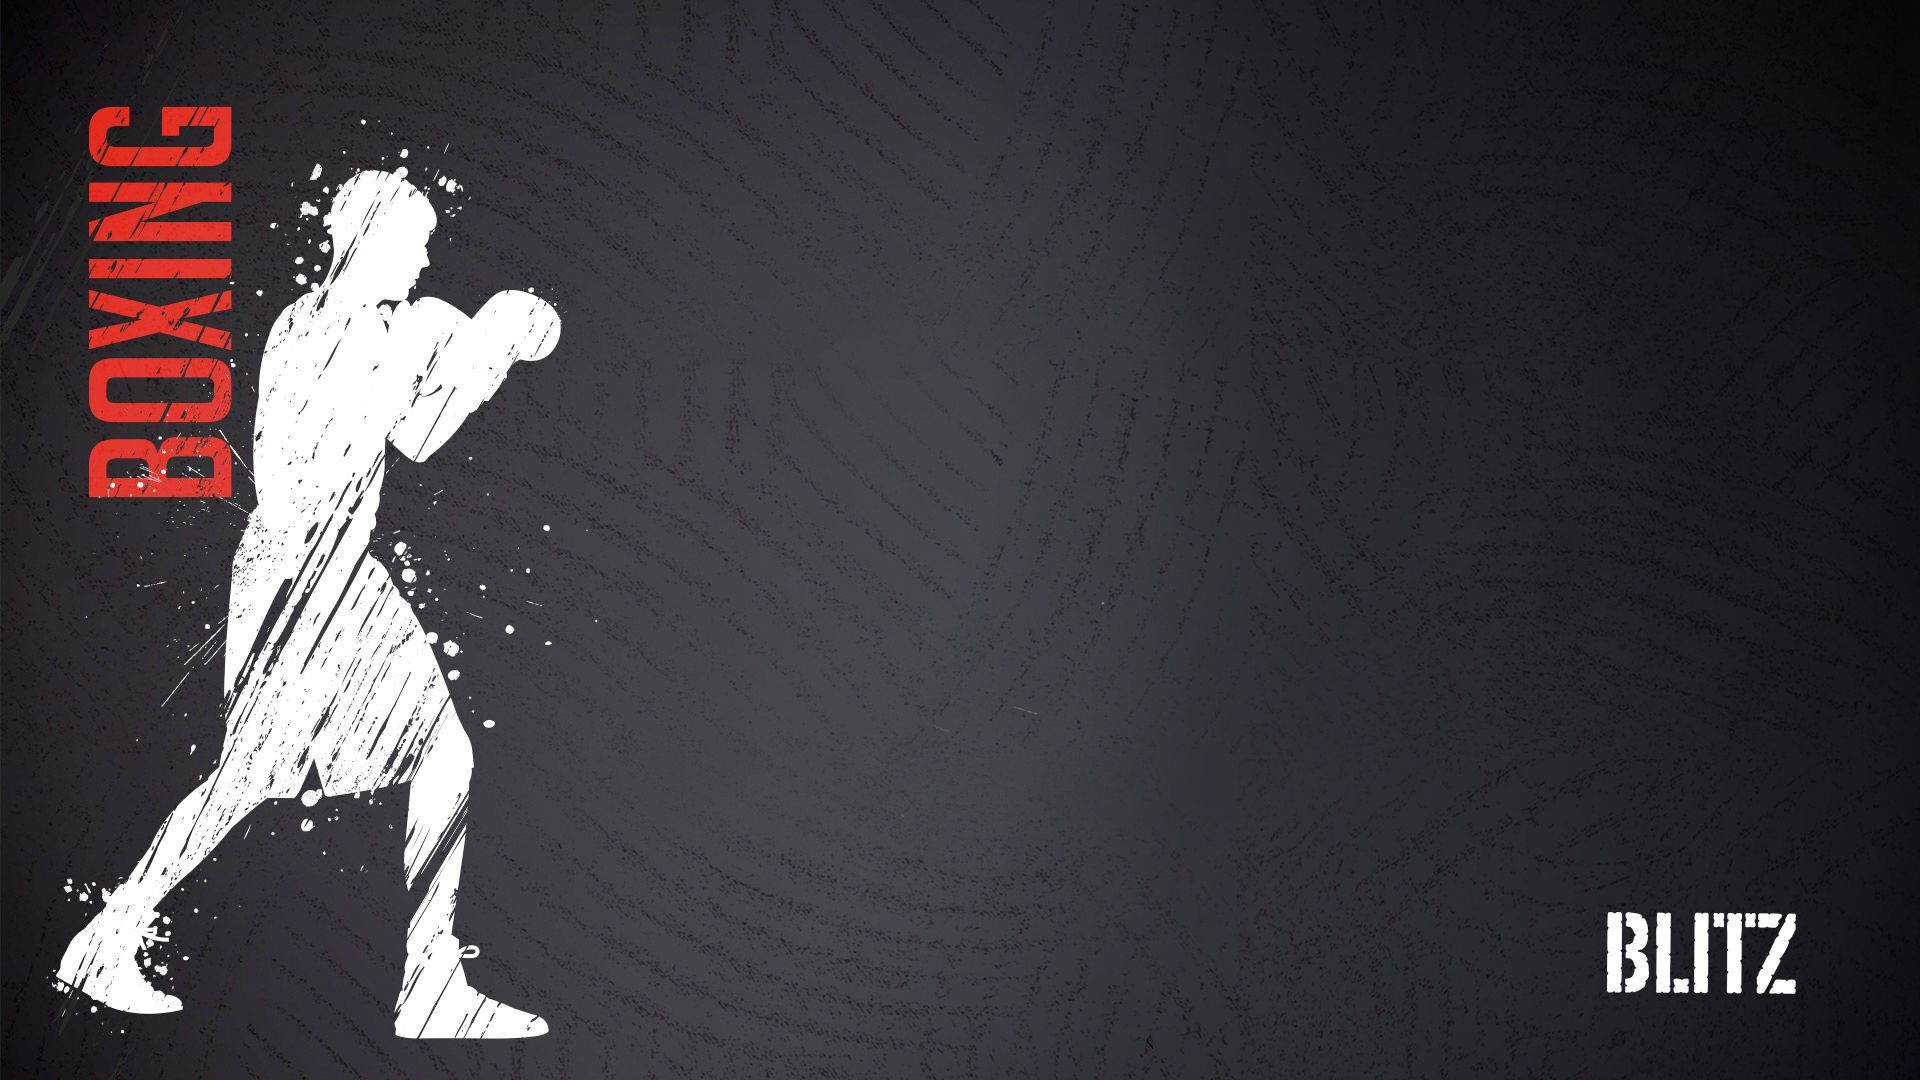 Blitz Boxing Wallpaper (1920 X 1080)